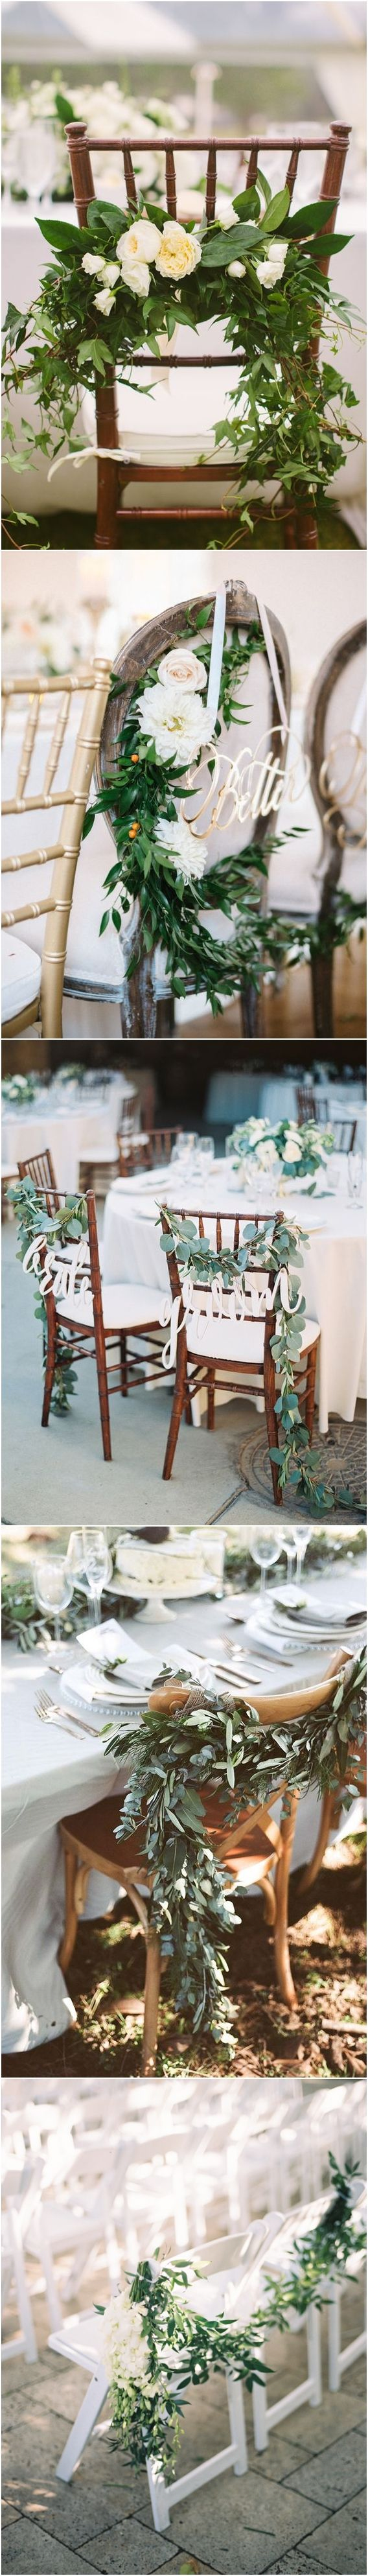 Chiavari Chair Hire Wedding London Reclining Beach Target Best 25+ Chairs Ideas On Pinterest | Decorations, Covers And ...